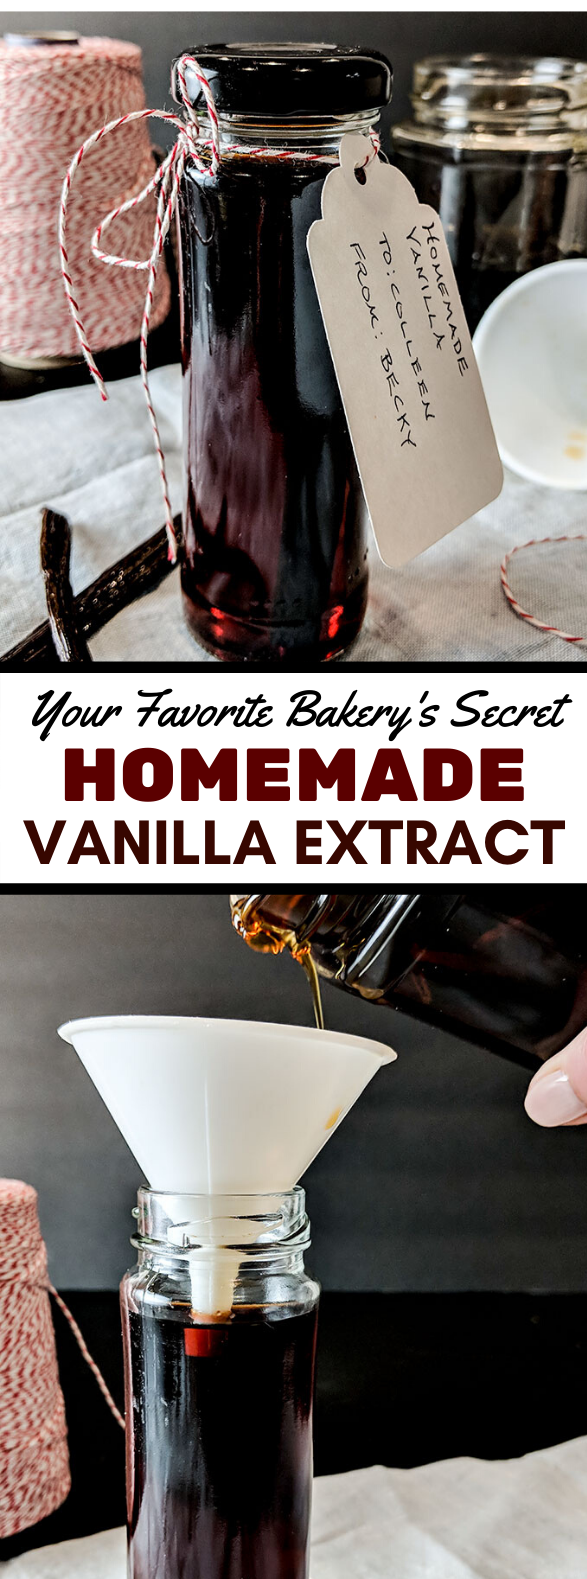 HOMEMADE VANILLA EXTRACT RECIPE #sauce #dressing